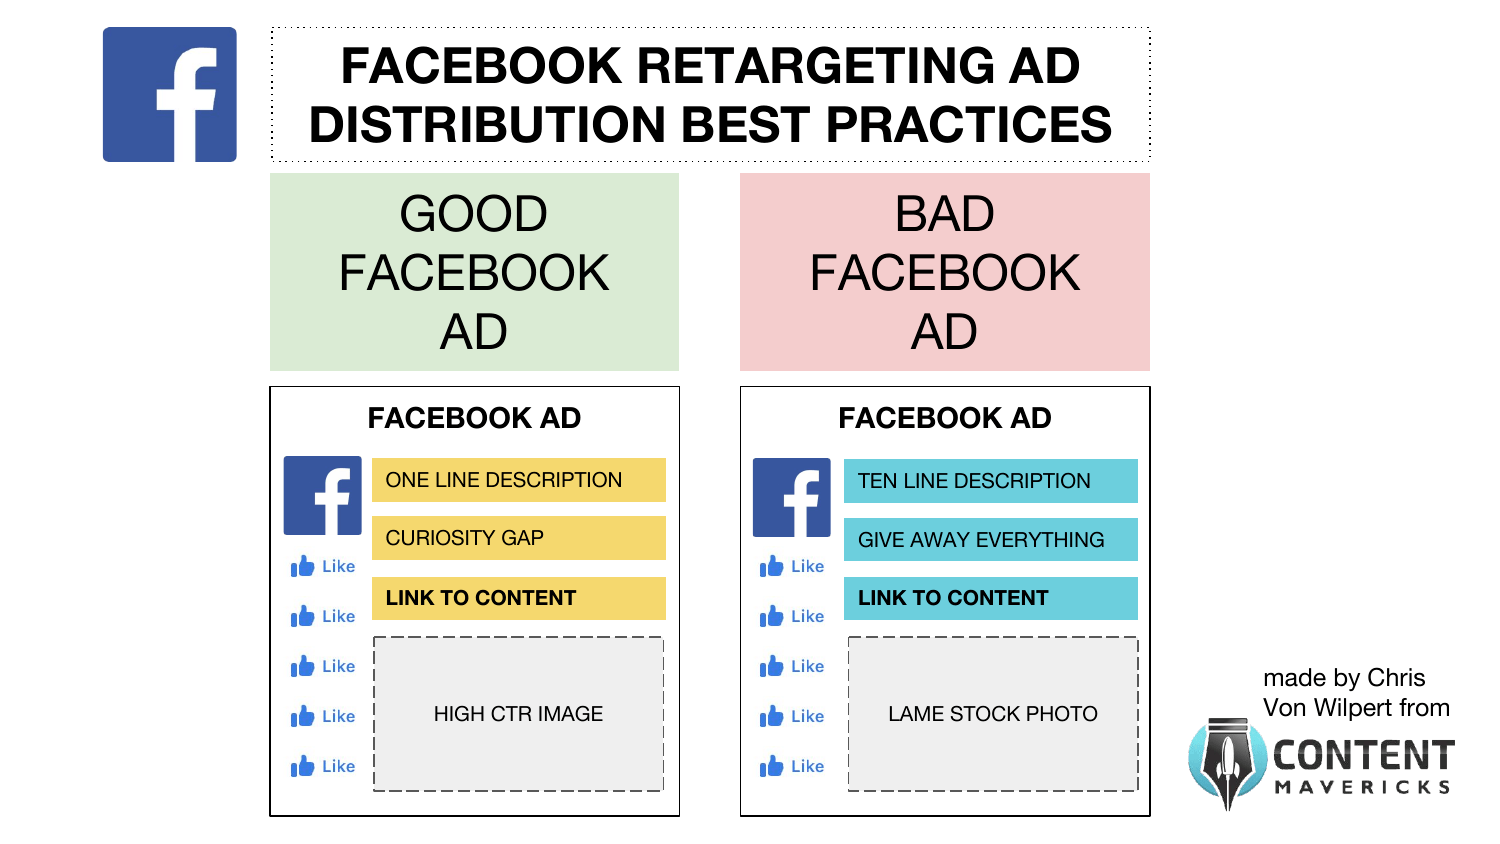 facebook retargeting ad content distribution best practices image